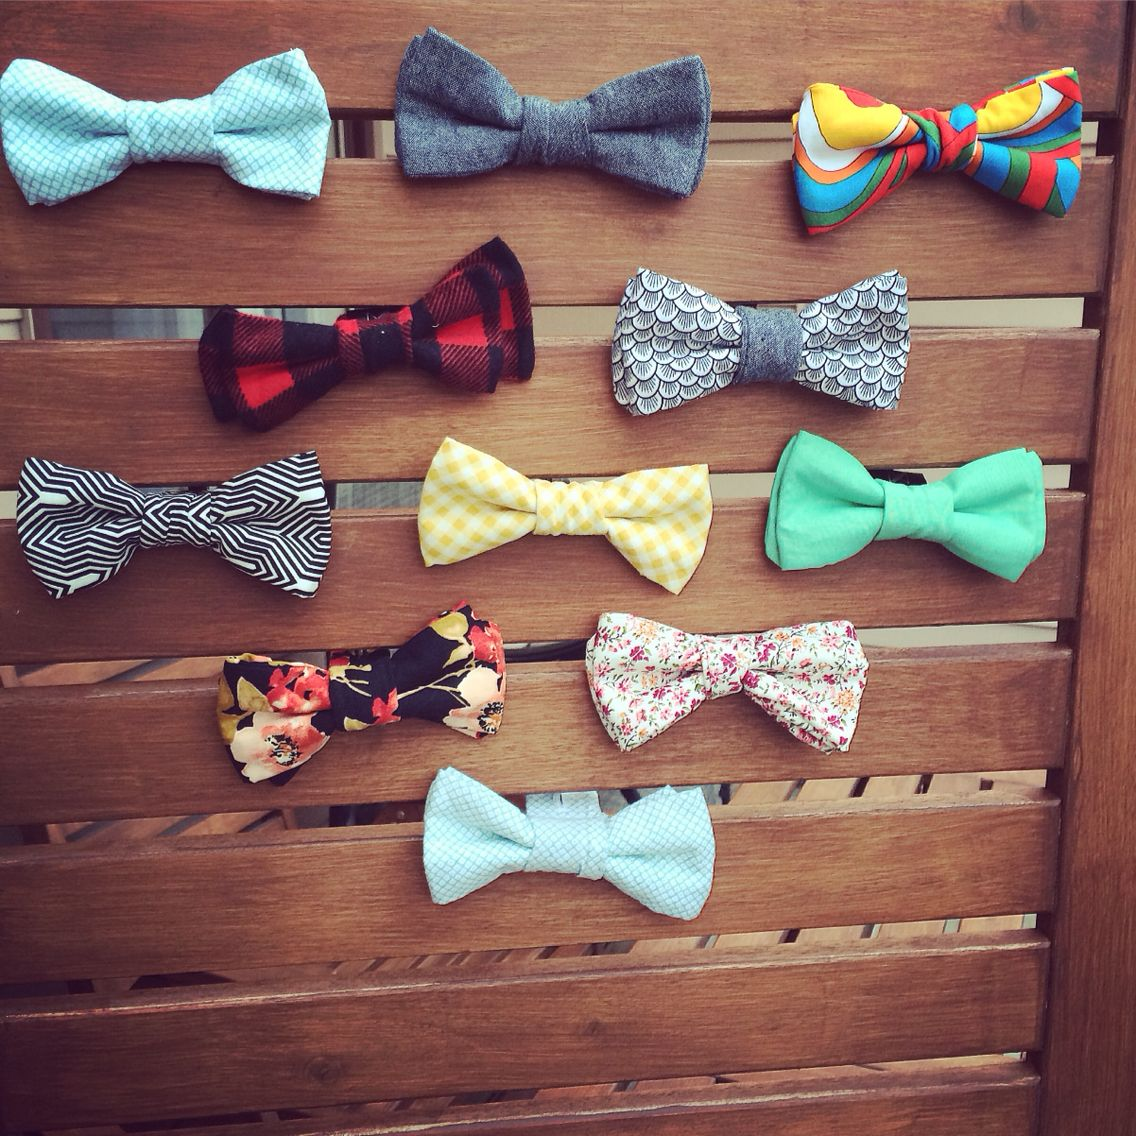 2bf1754d2c61f Bow tie display for a craft fair / Sauvagine | stuff i want to do ...